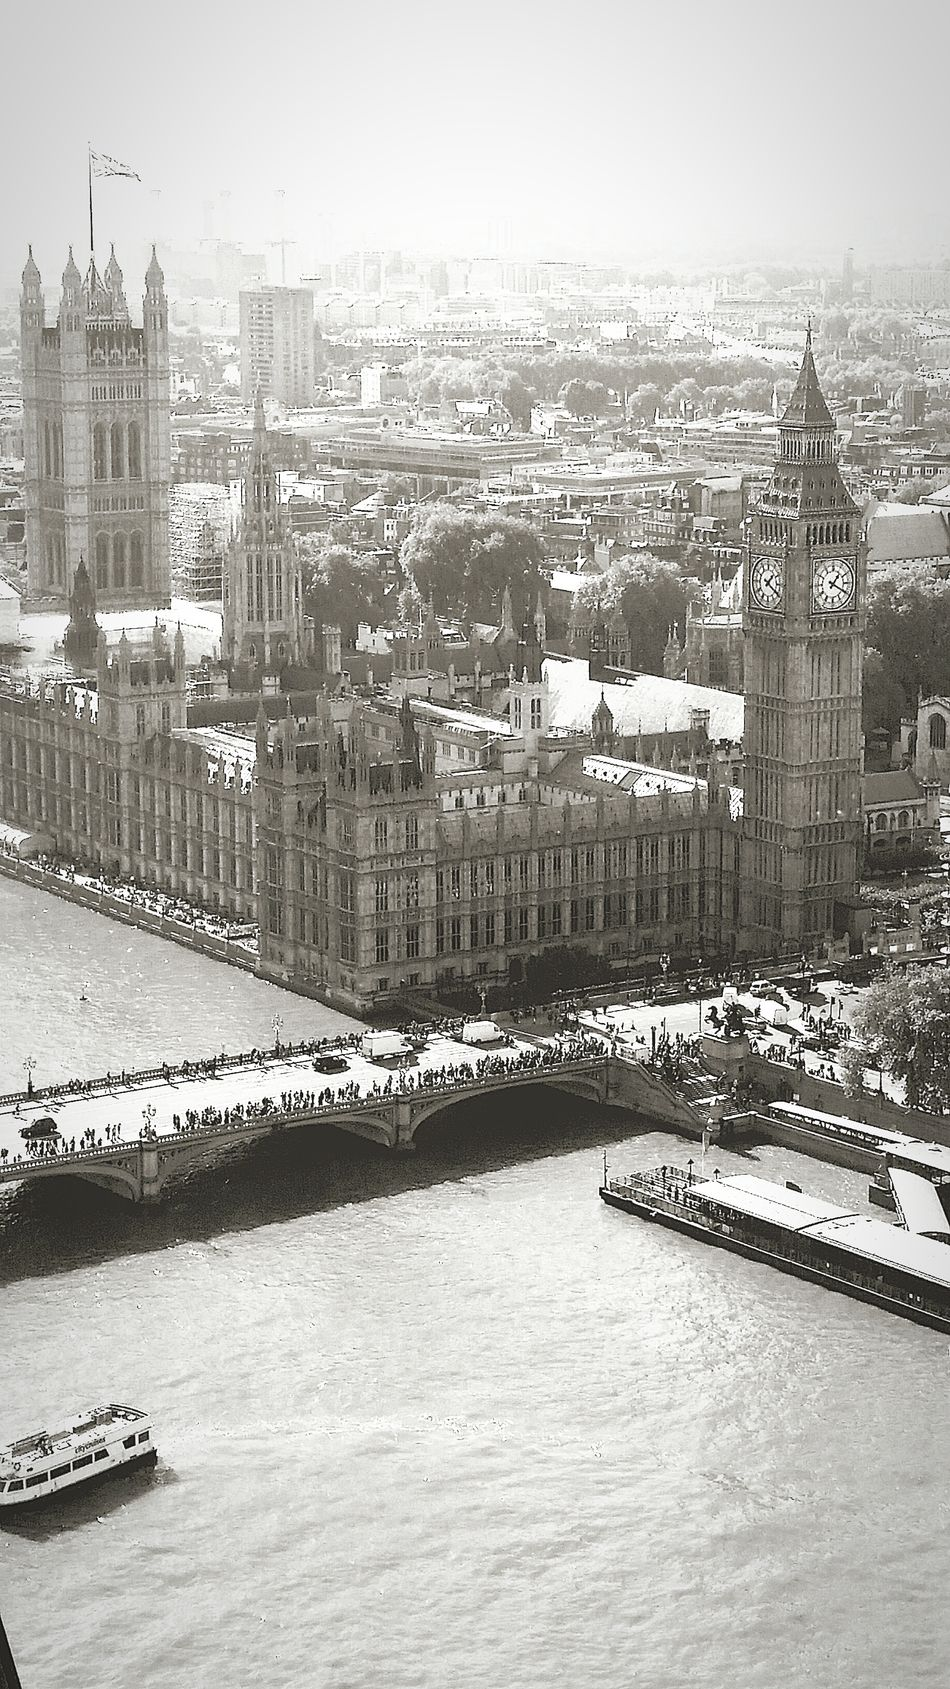 Gettyimages Eyeemmarket Iconic Images  Photography Takingphotos Throughmyeyes Historical Place Architecture Architectural Detail LondonEye Birdseyeview London Capital Cities  Blackandwhite Black & White Blackandwhitephotography Bigben Housesofparliament Londonbridge Ratrun Cityscapes Citylife City View  Footfall London Eye